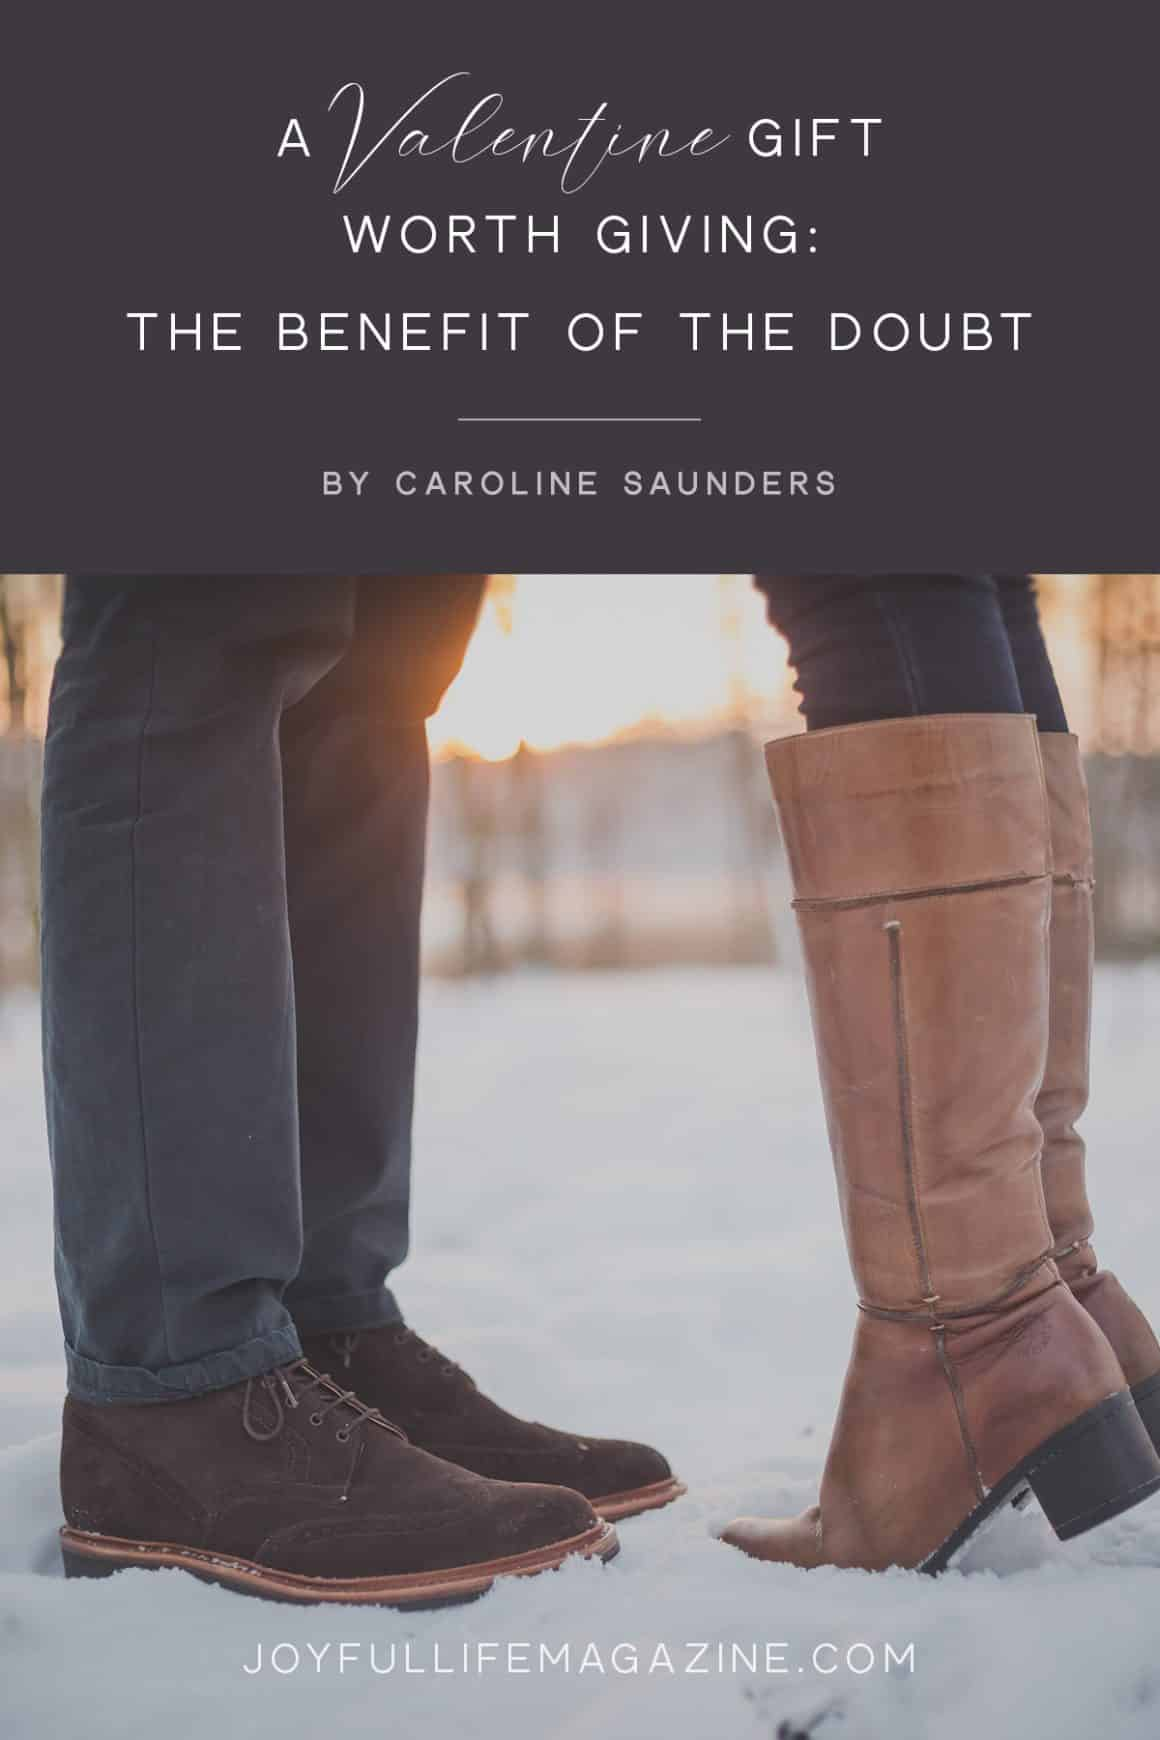 A Valentine Gift Worth Giving: The Benefit of the Doubt   by Caroline Saunders   The Joyful Life Magazine